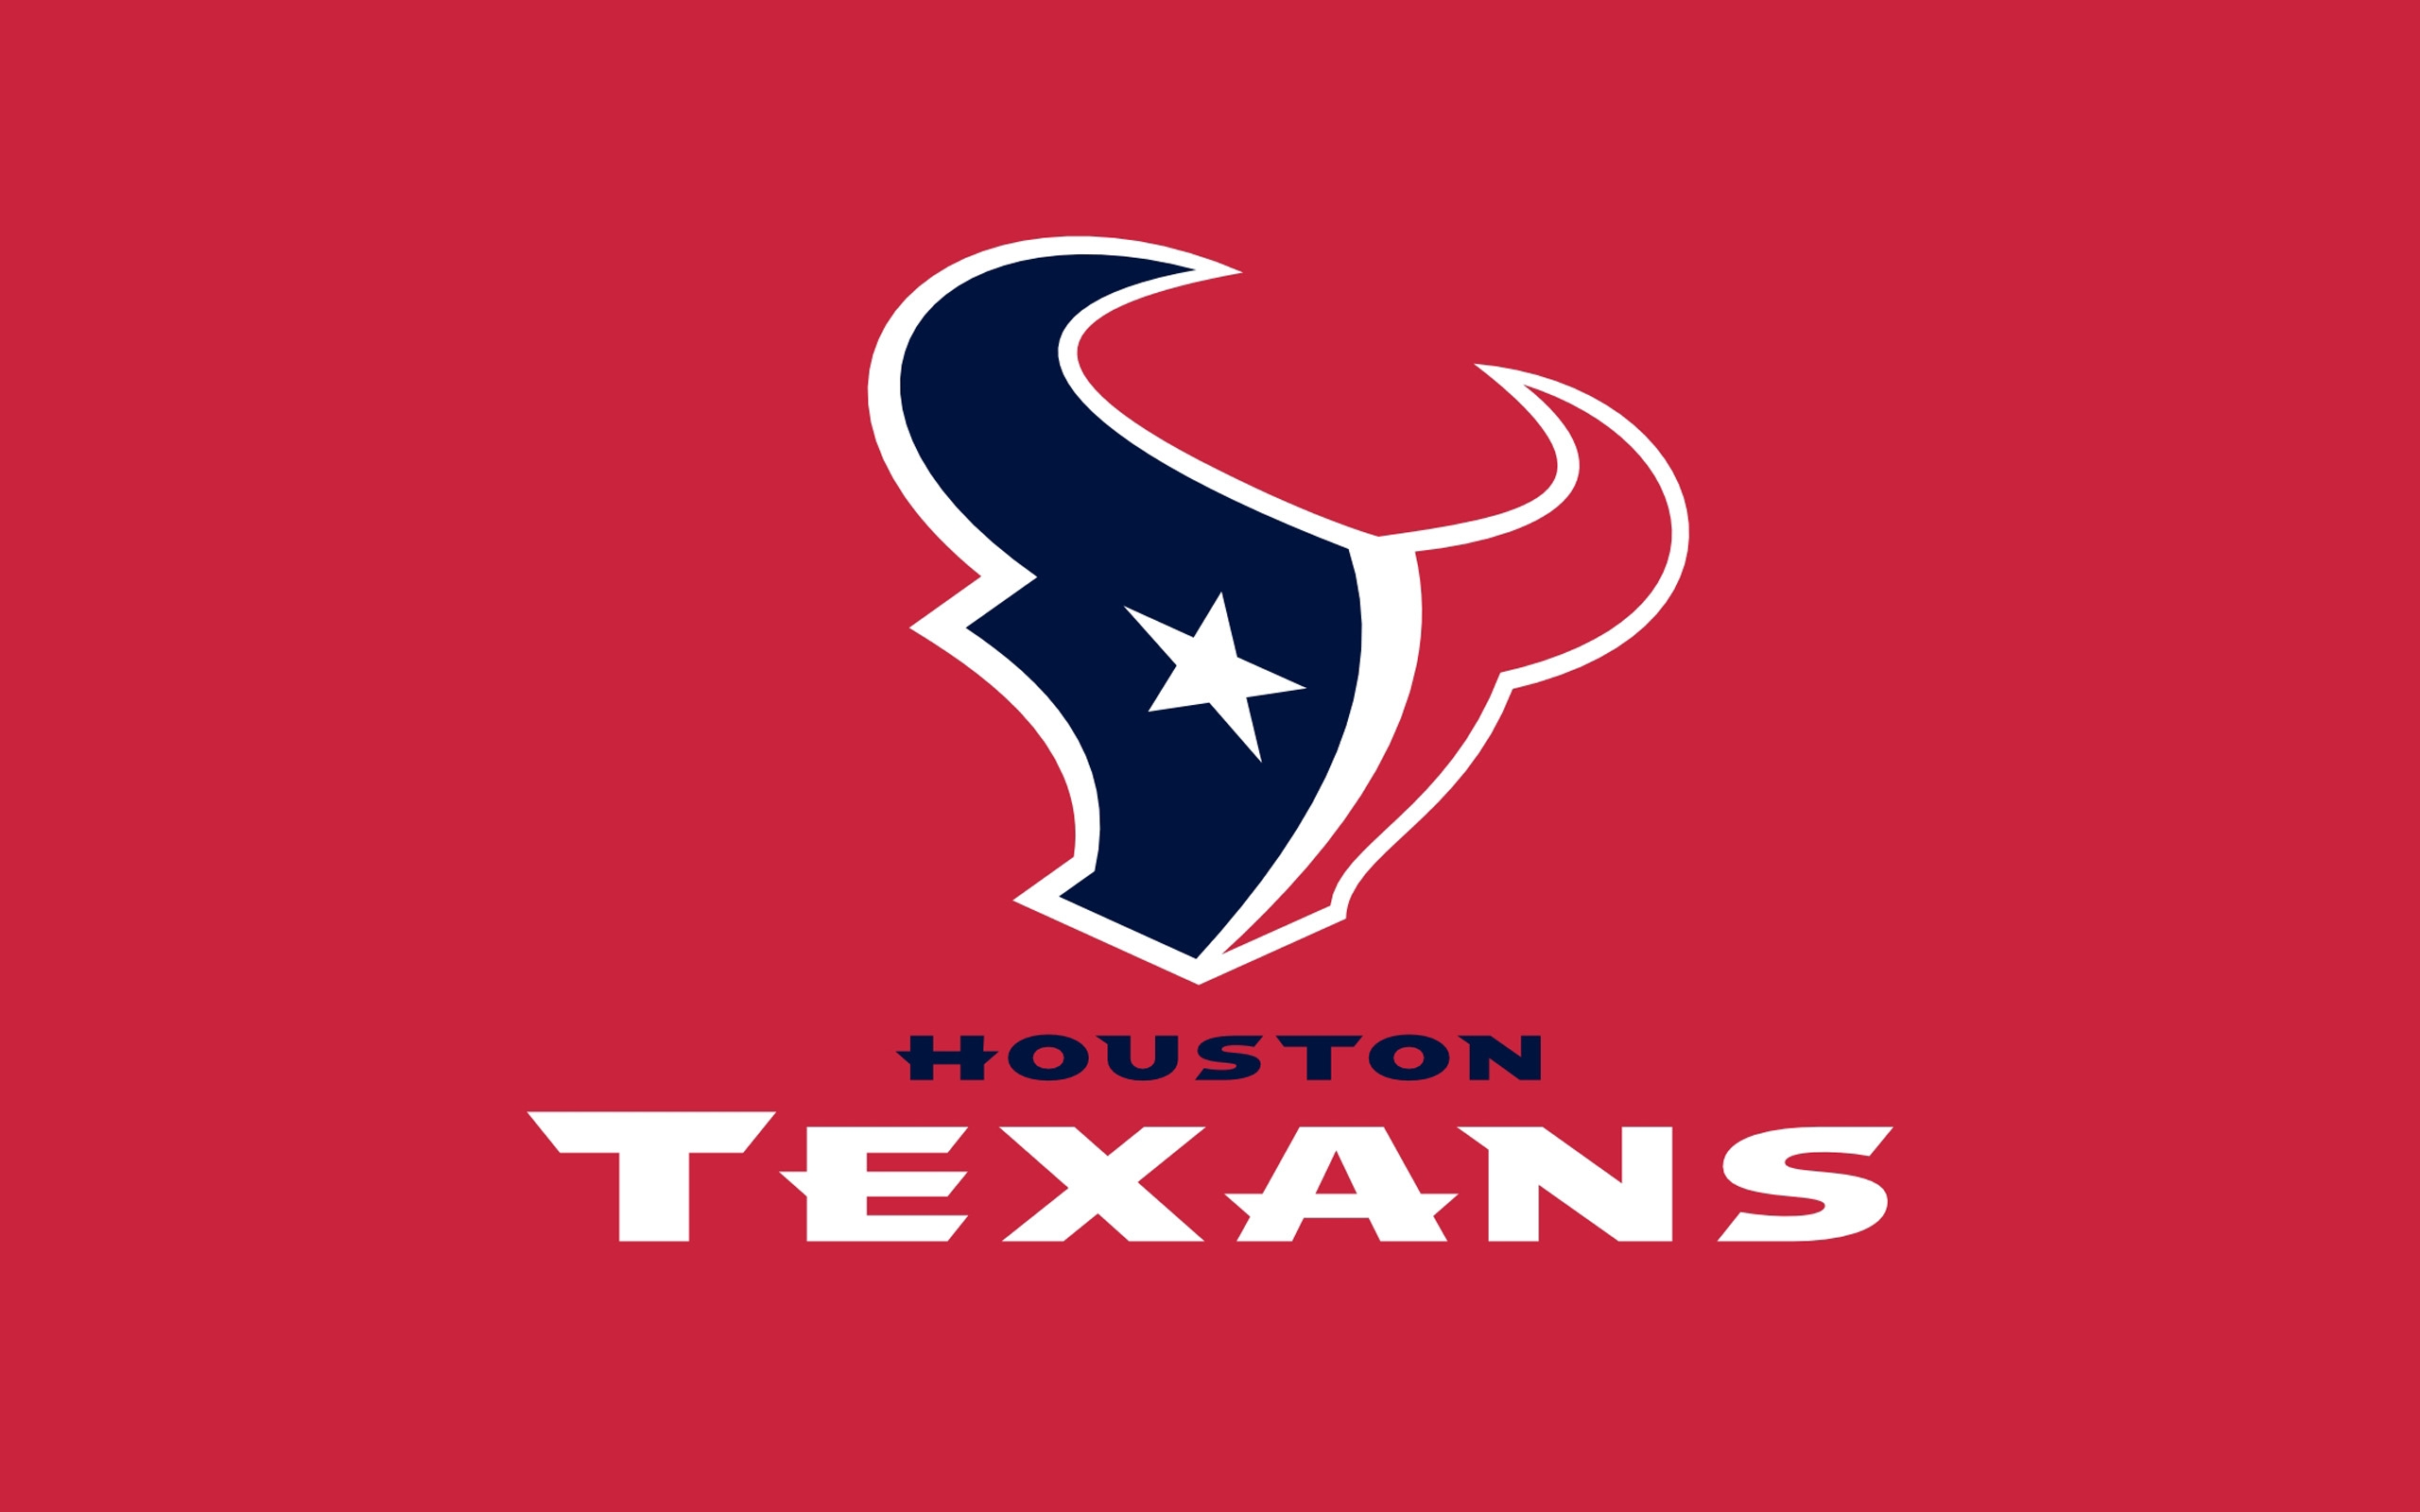 Texans Wallpapers HD 2560x1600